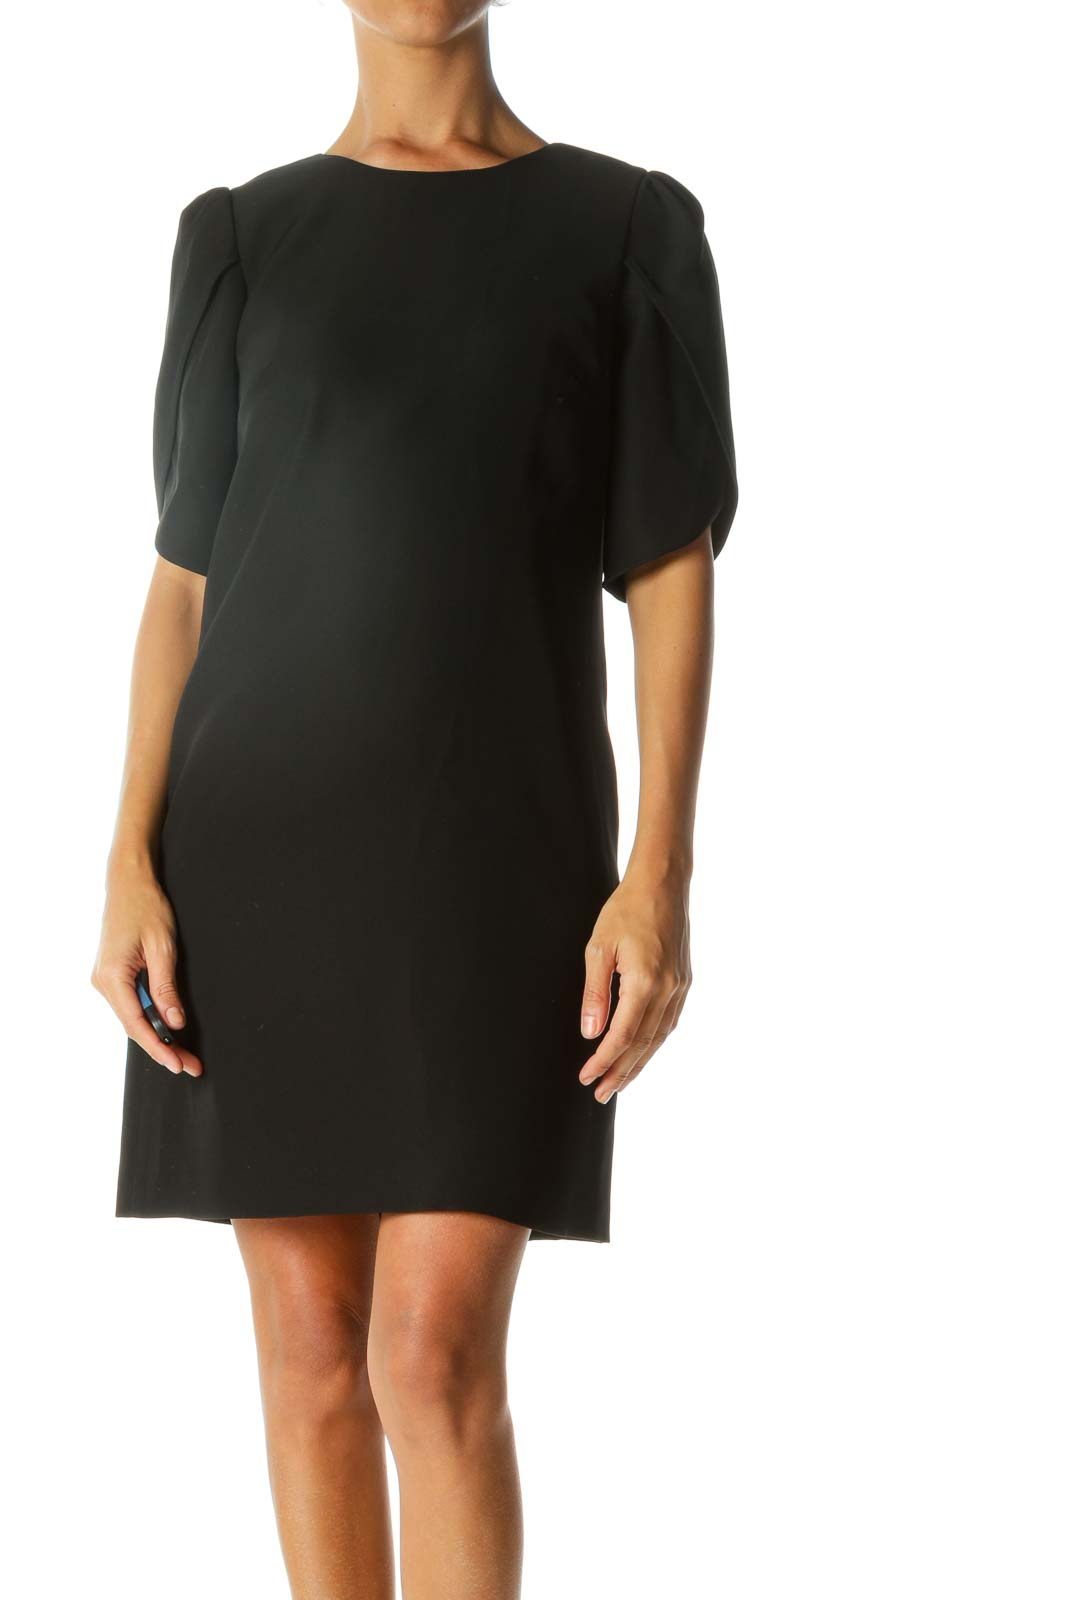 Black Round Neck Flared-Short-Sleeves Cocktail Dress Front